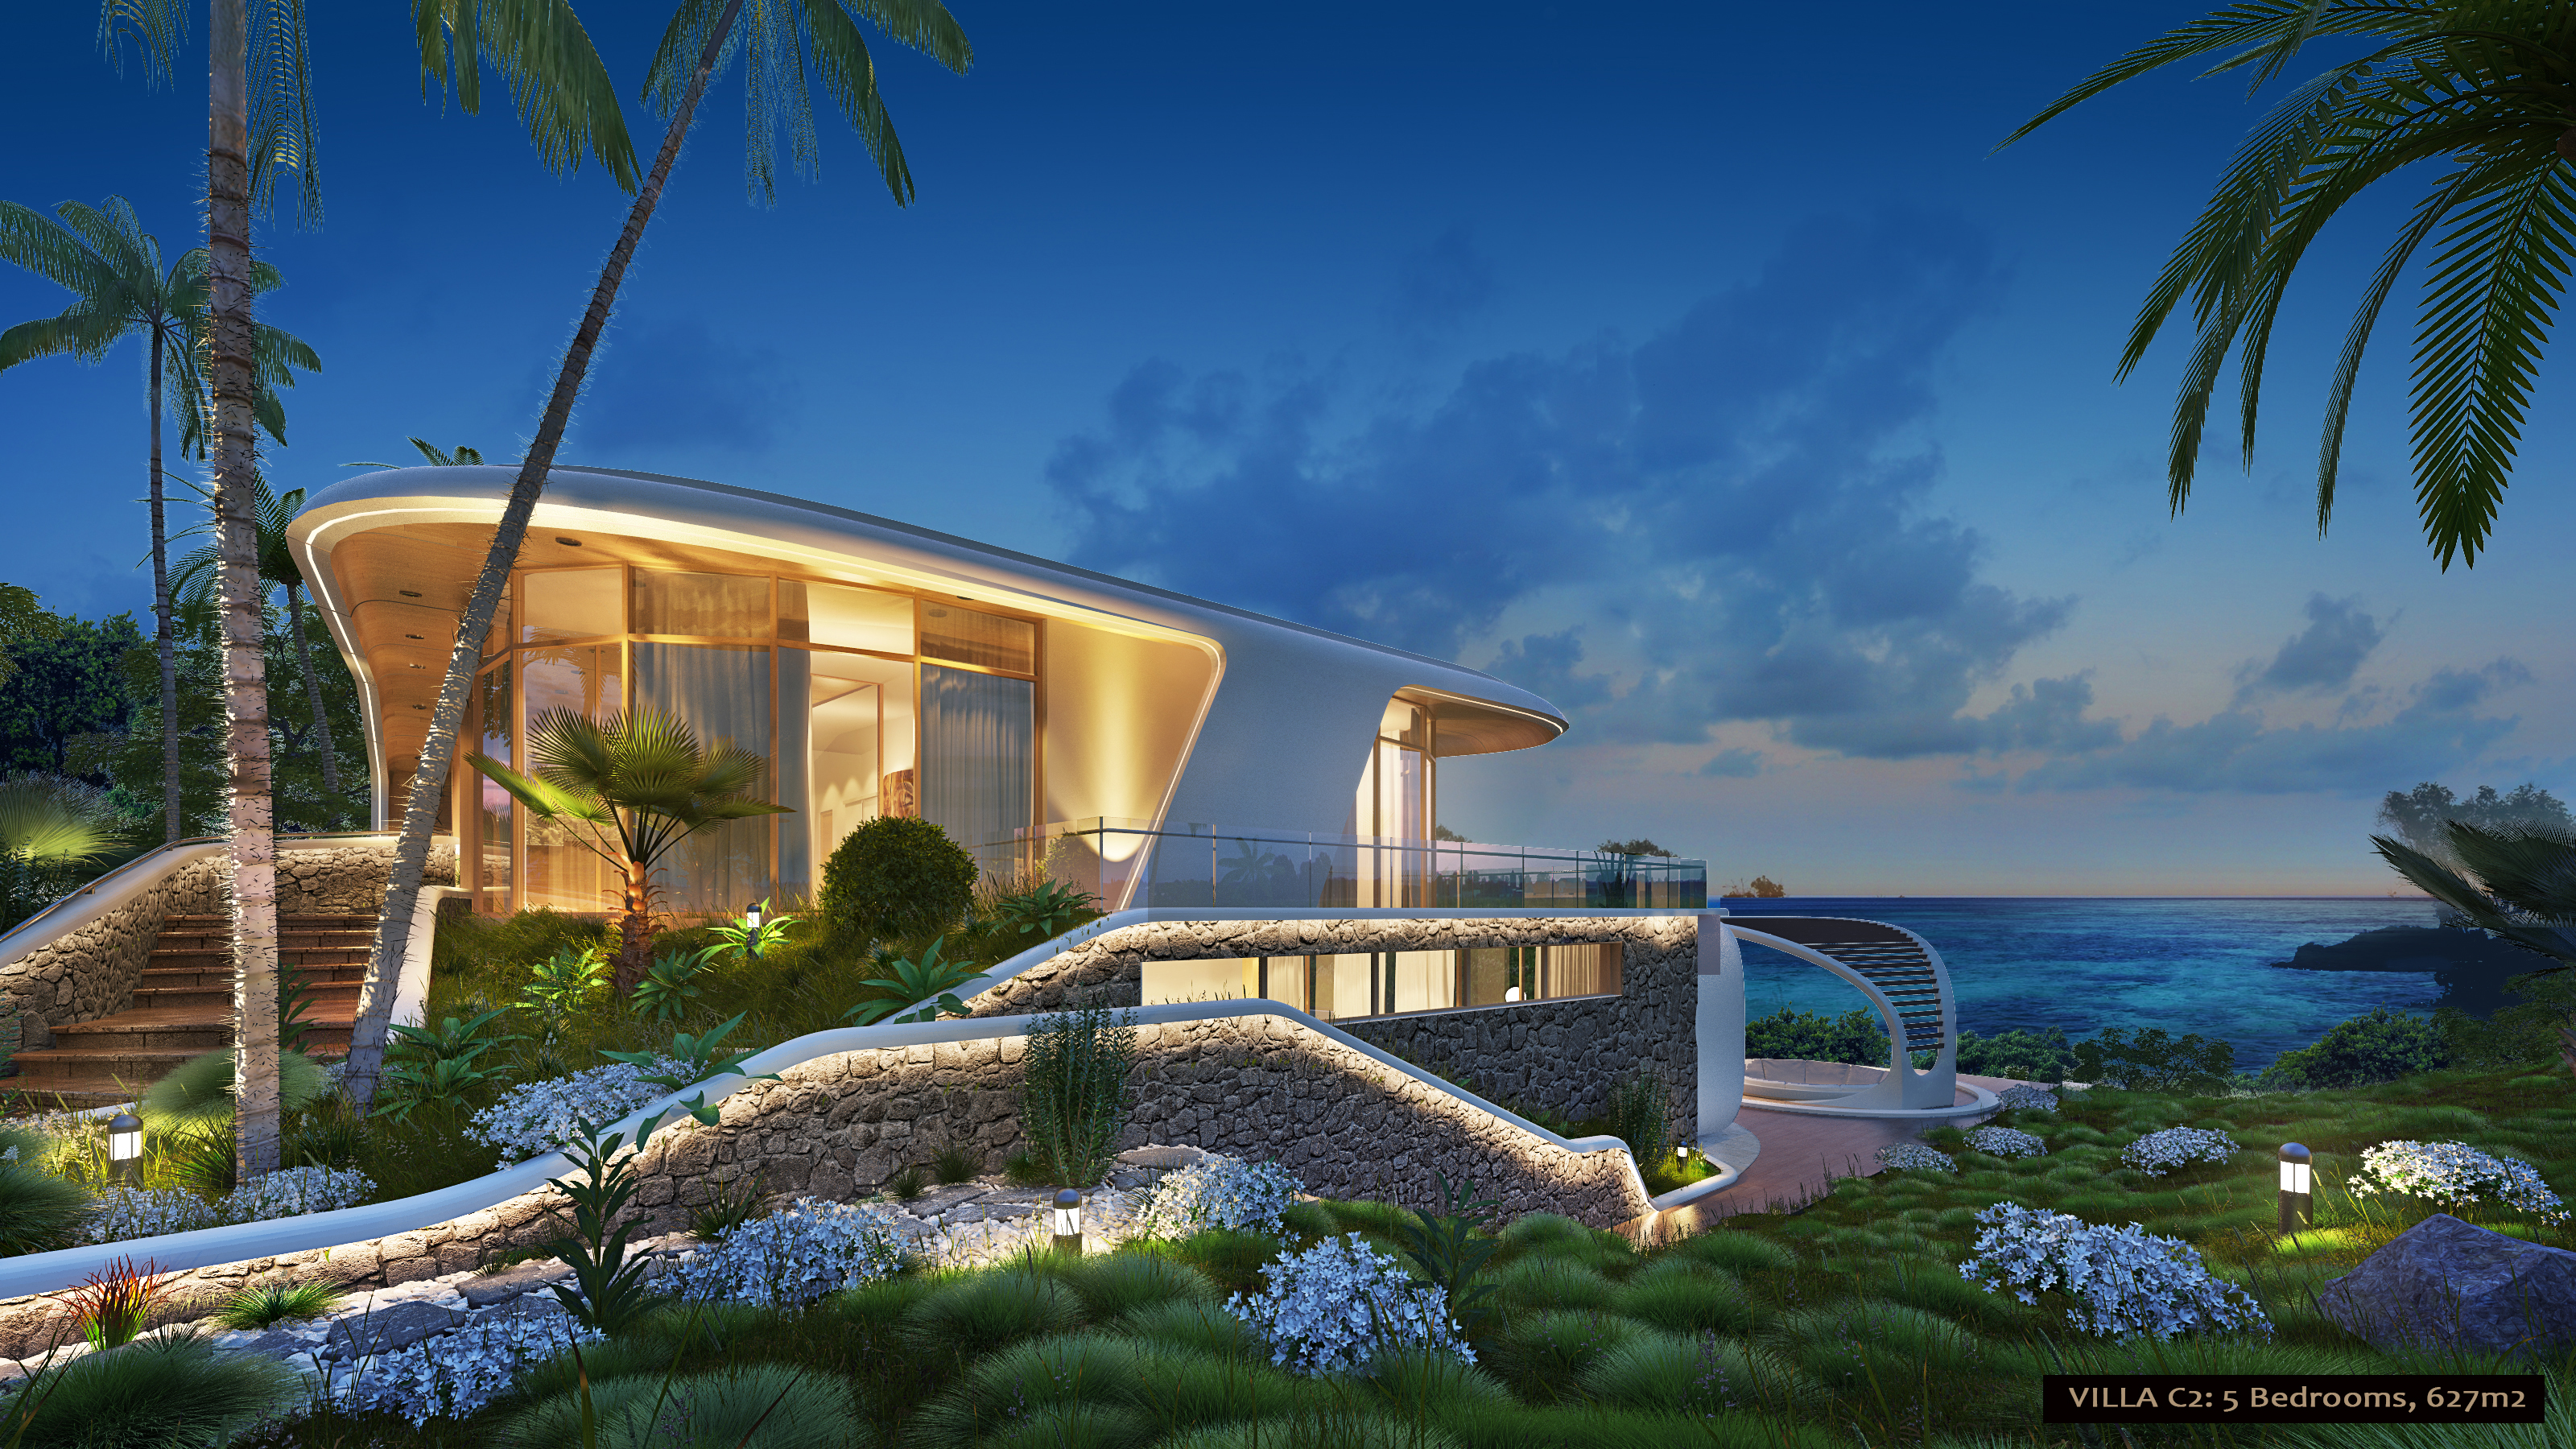 5 Bedroom Dynamic Seaview Villa